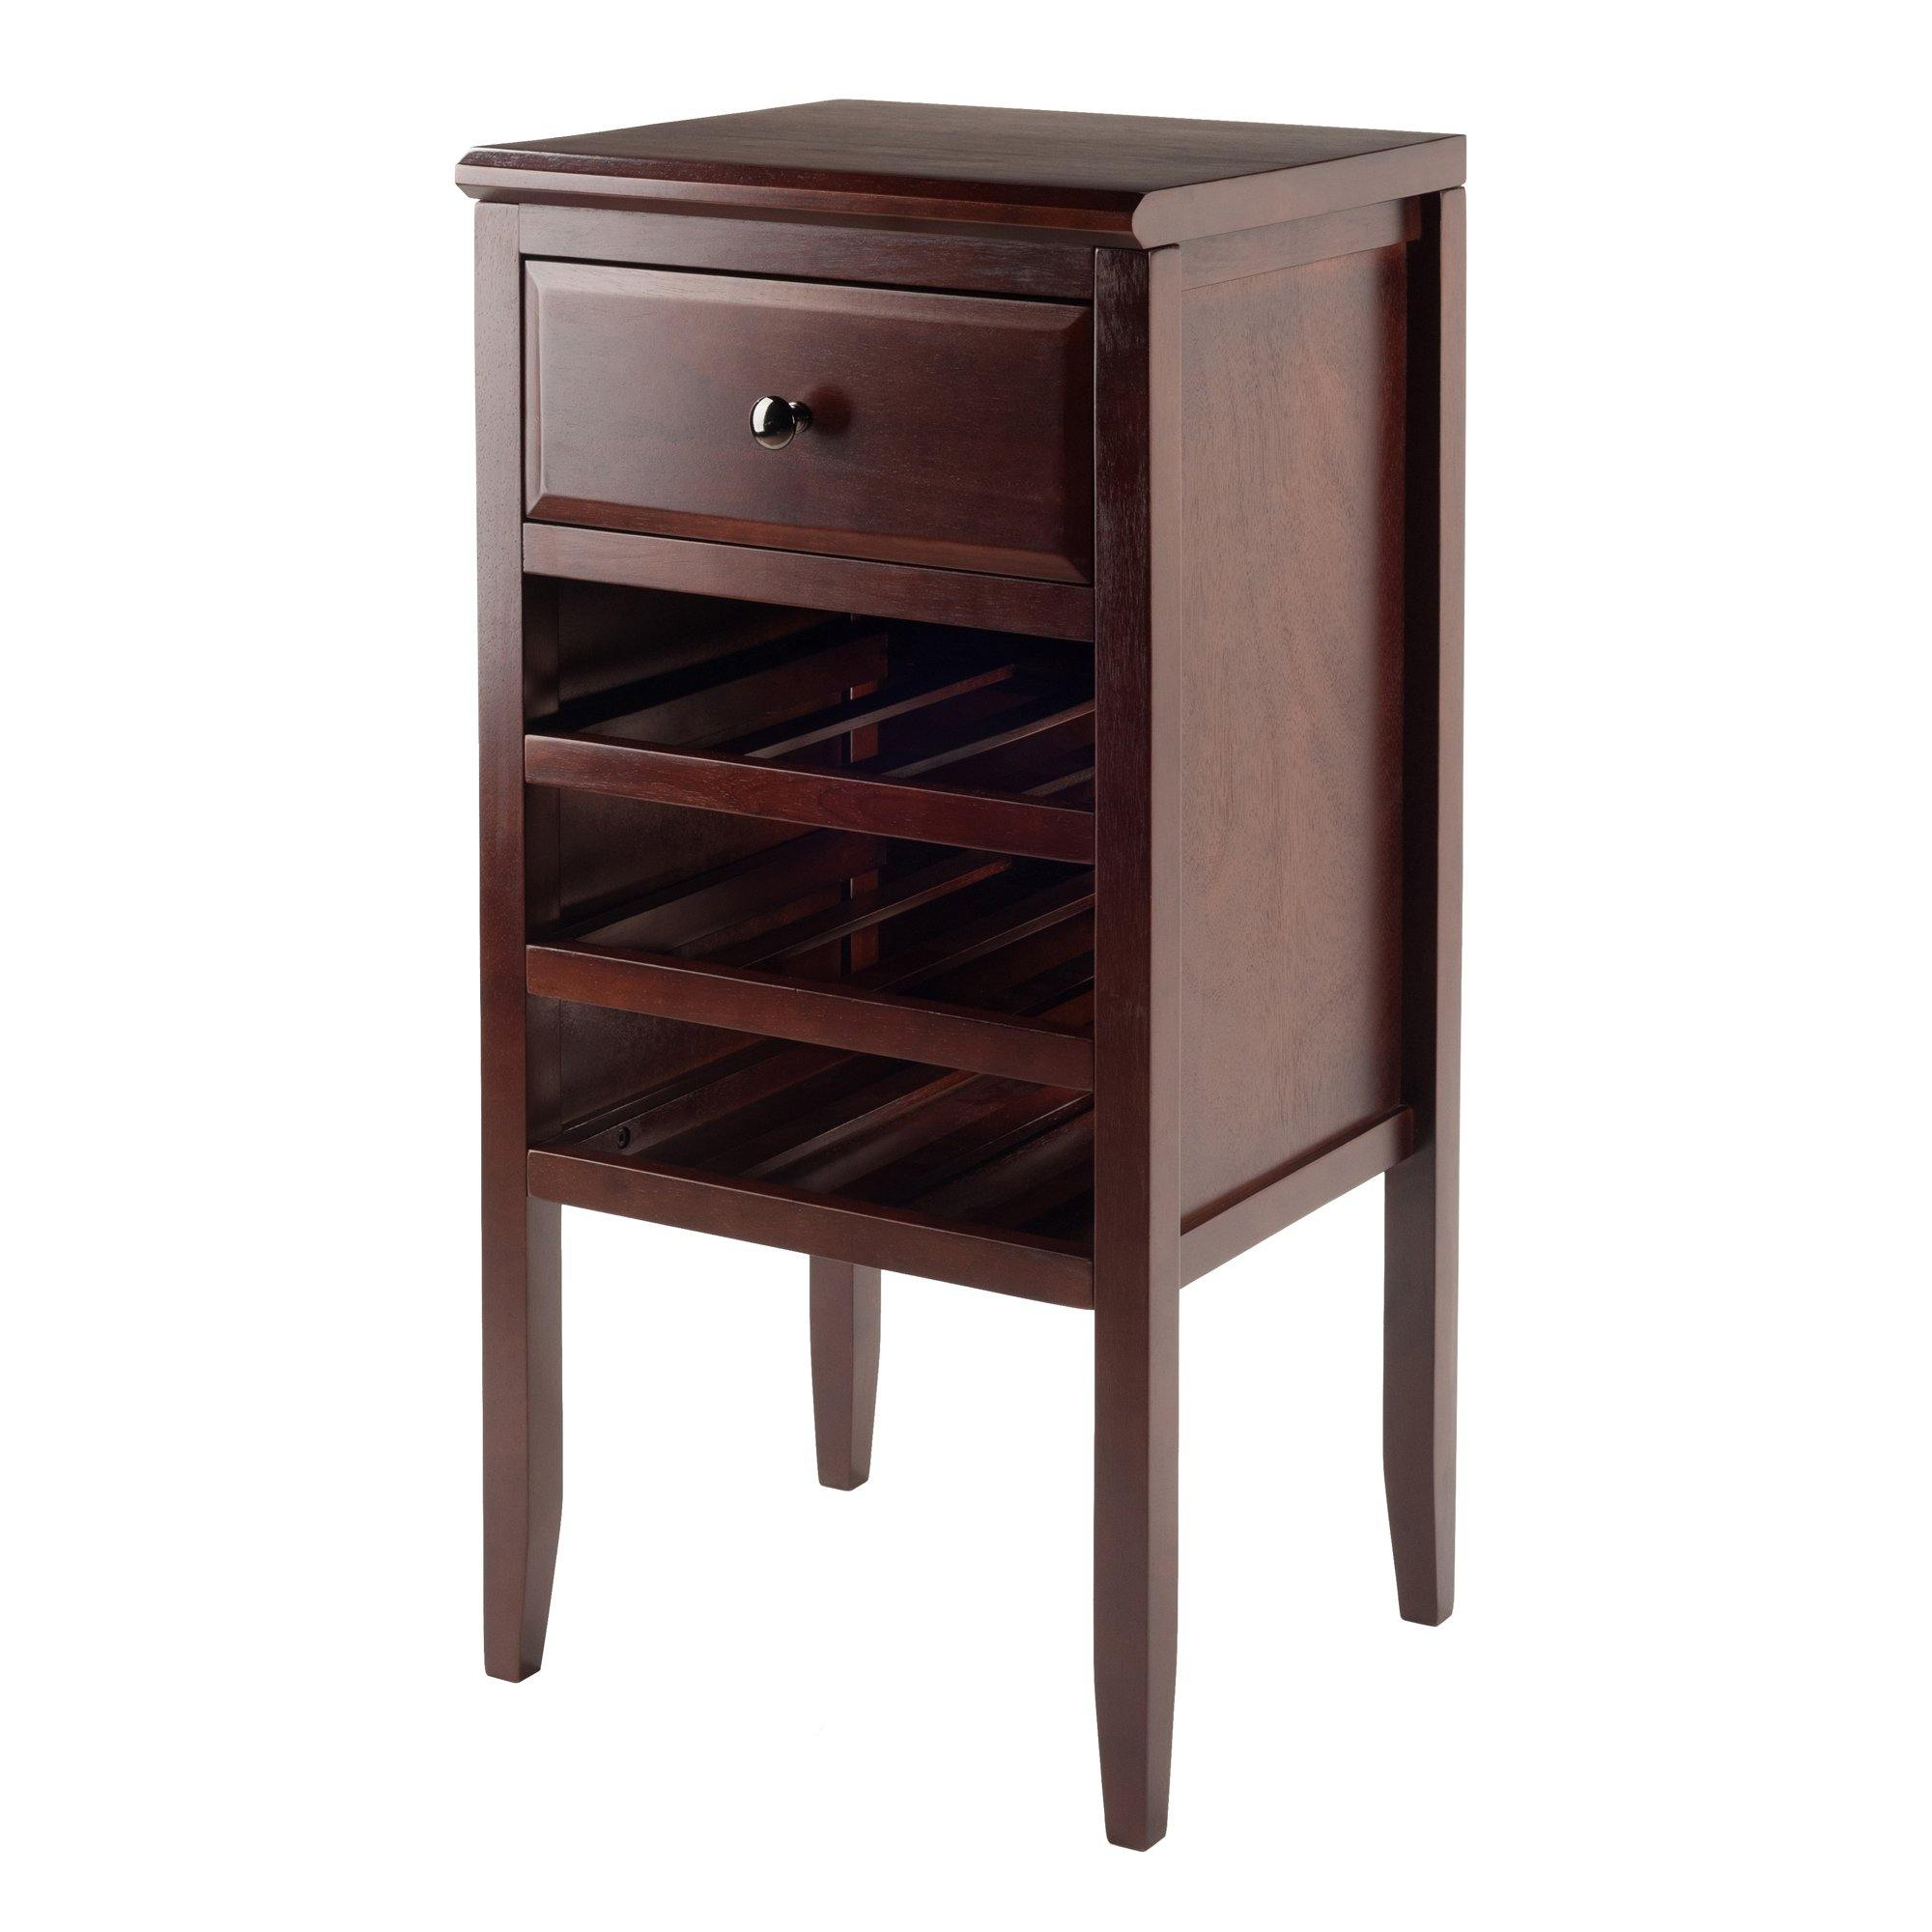 Orleans Modular Buffet Table, Wine Cabinet, Cappuccino - My USA Furniture